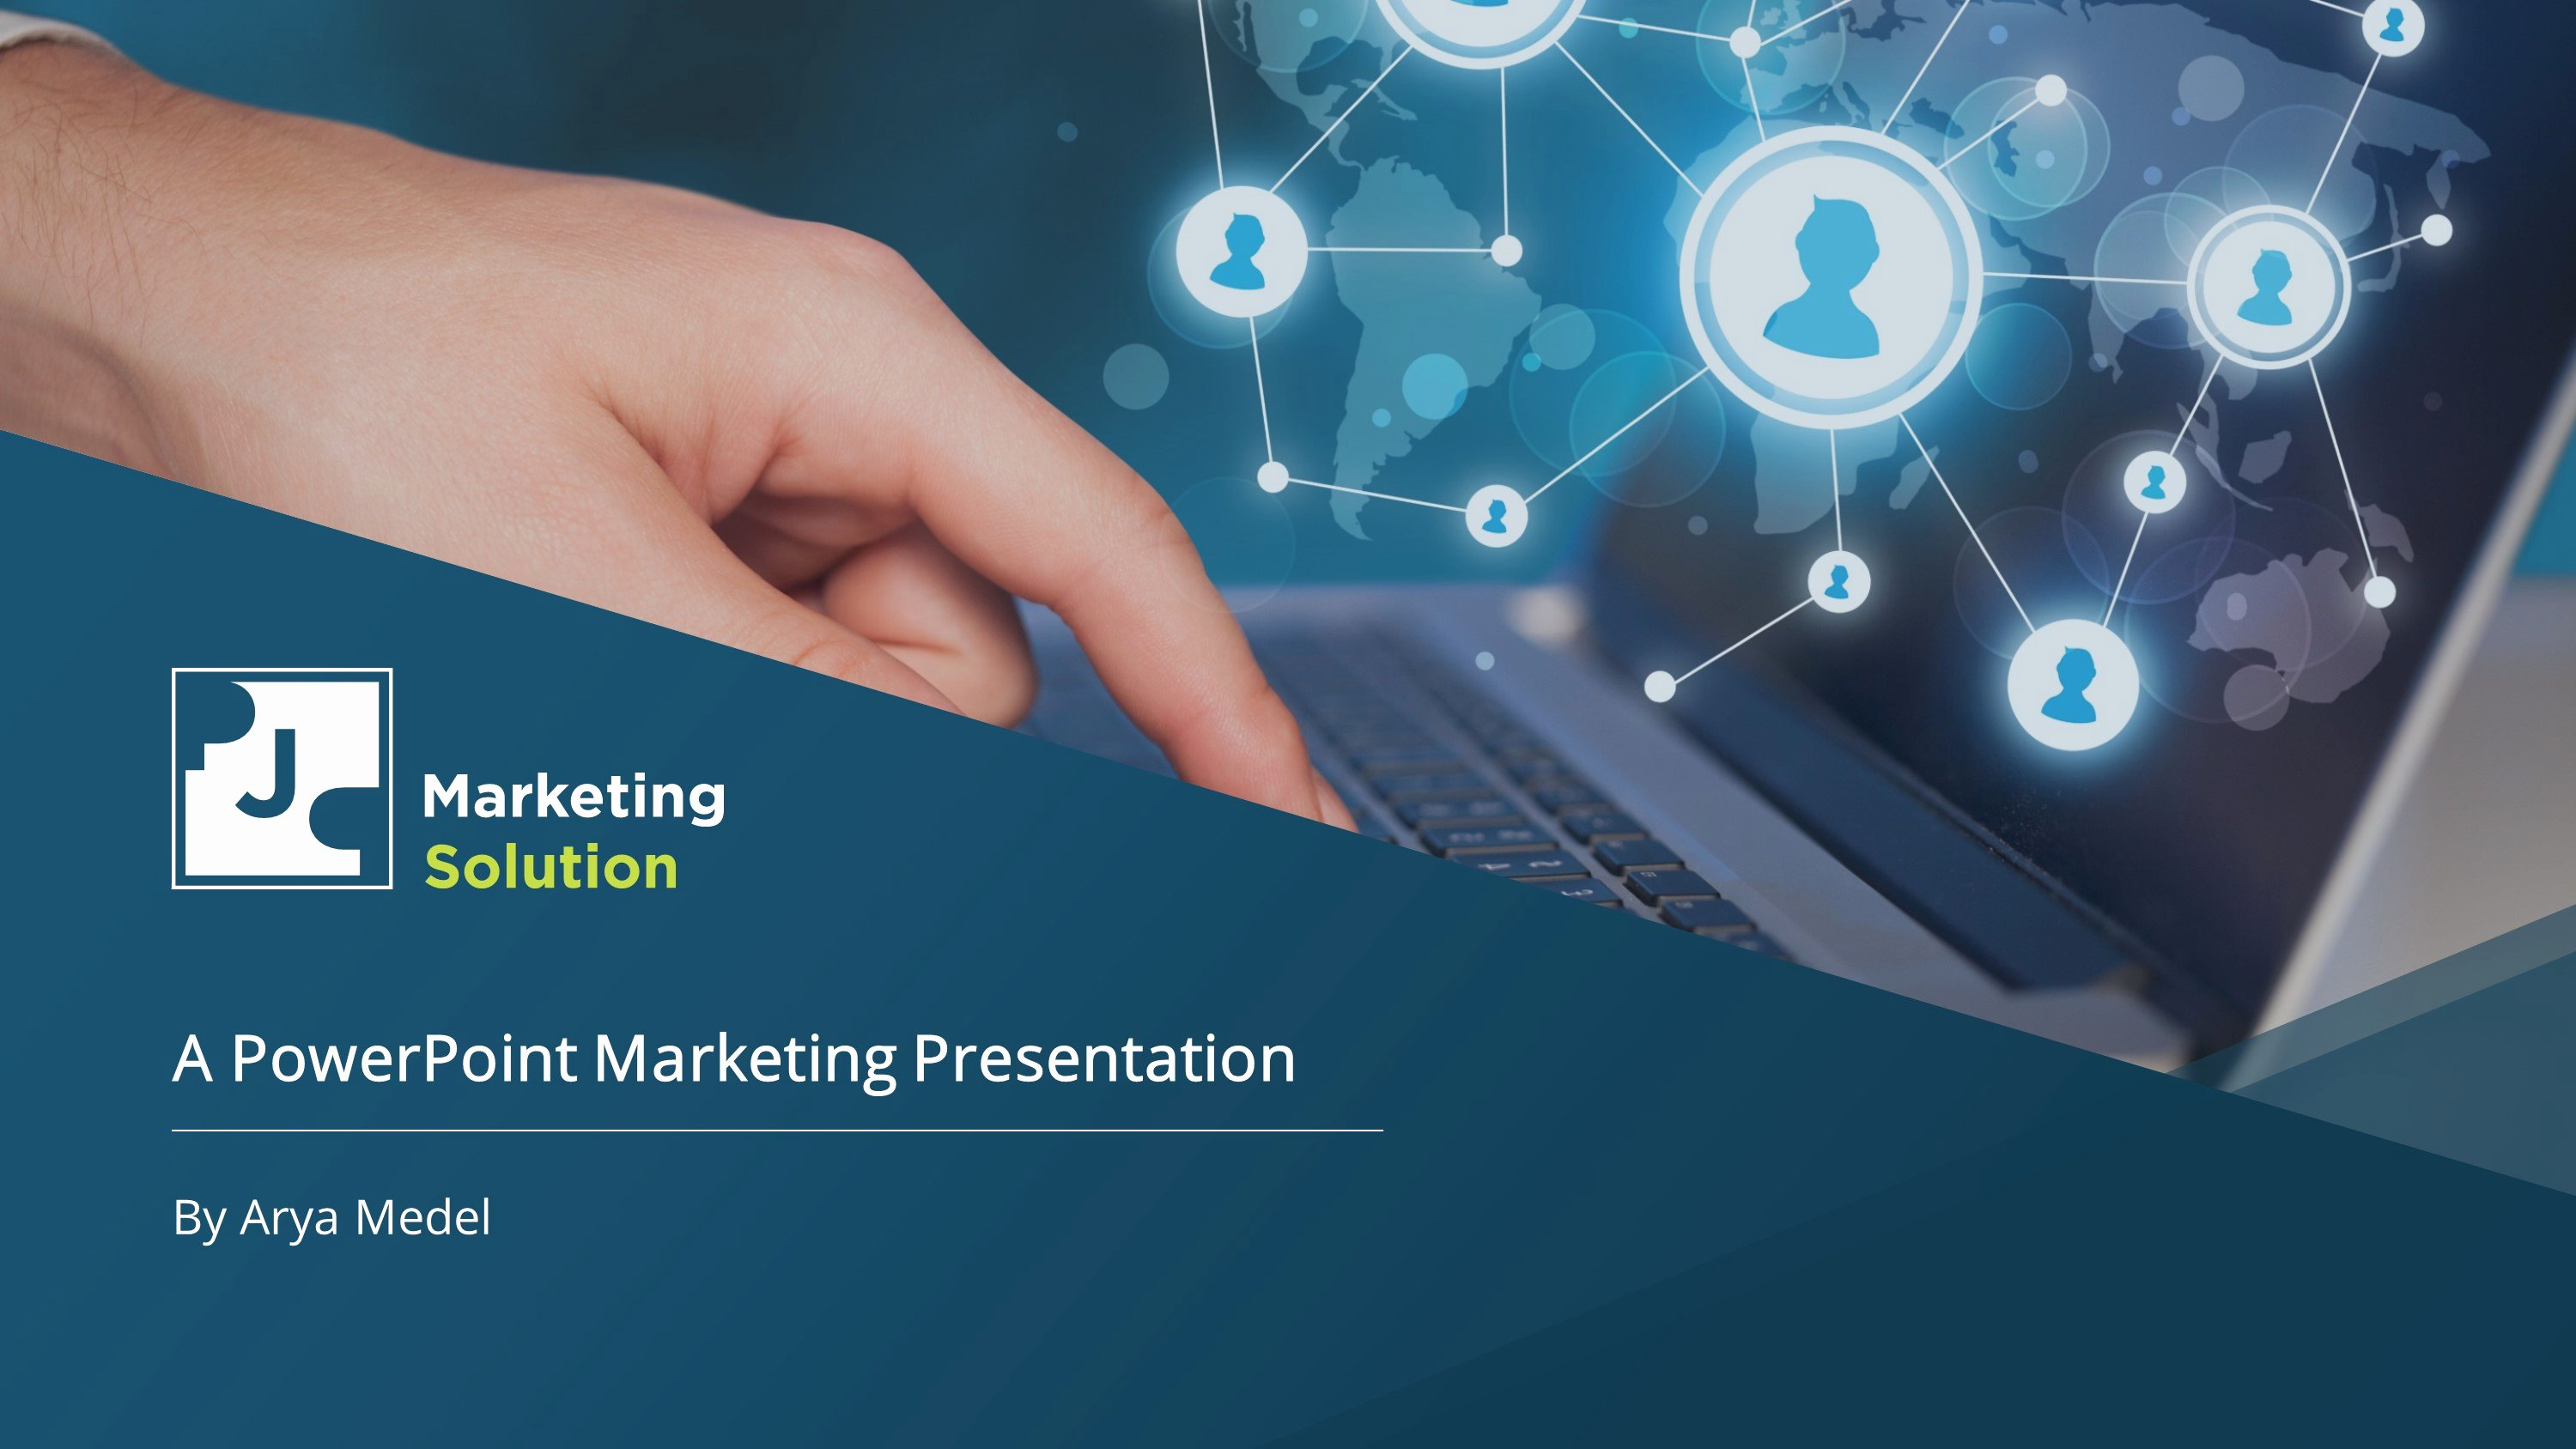 Research Presentation Powerpoint Template Awesome Fine Dining Food Premium Powerpoint Template – Slidestore